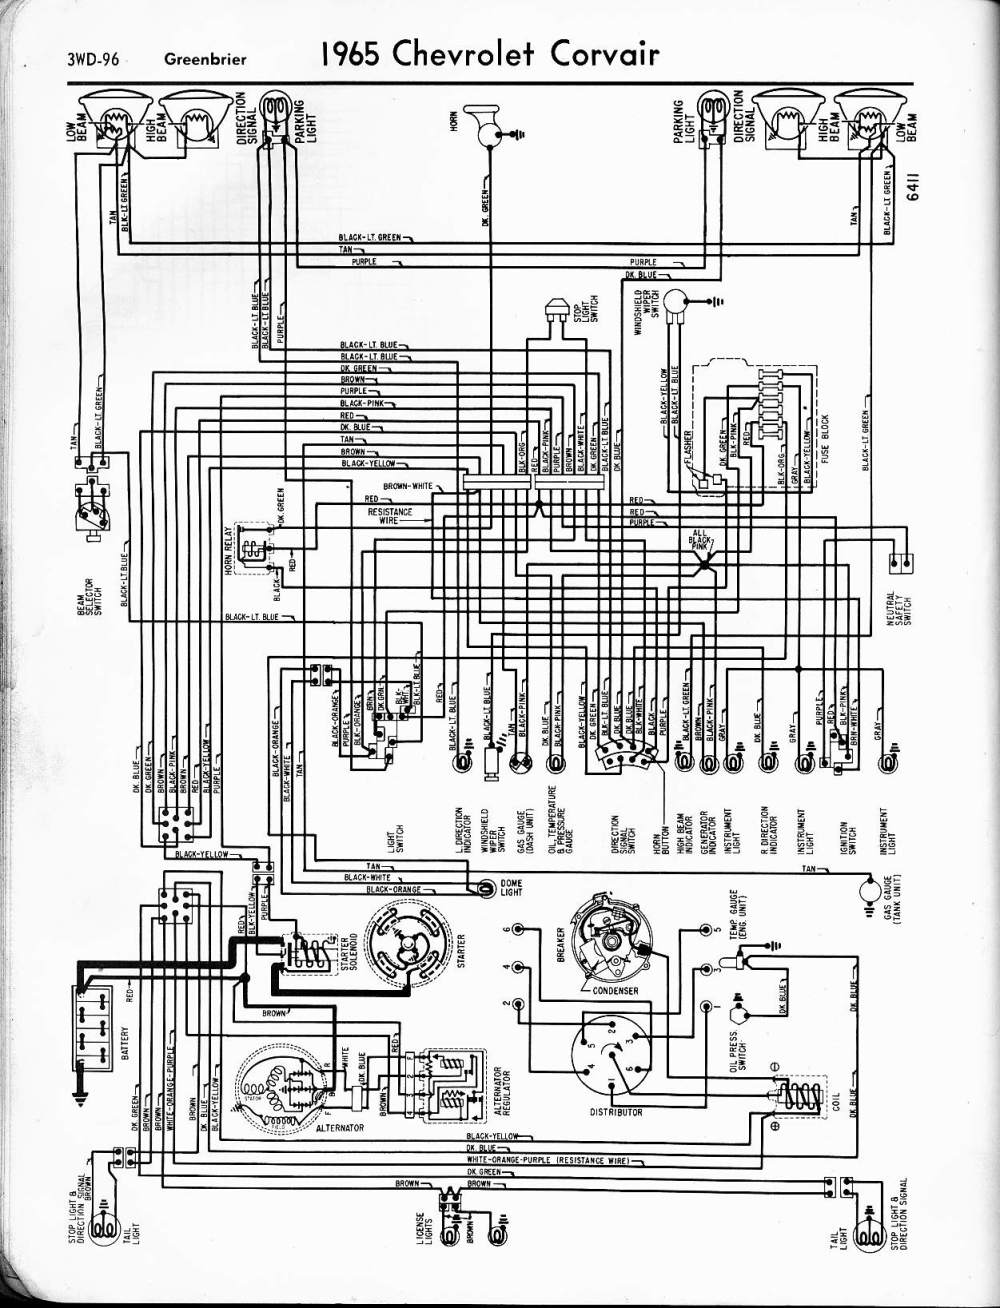 medium resolution of 1965 corvair wiring diagram wiring diagram expert 1965 chevy corvair wiring diagram 1965 corvair wiring diagram